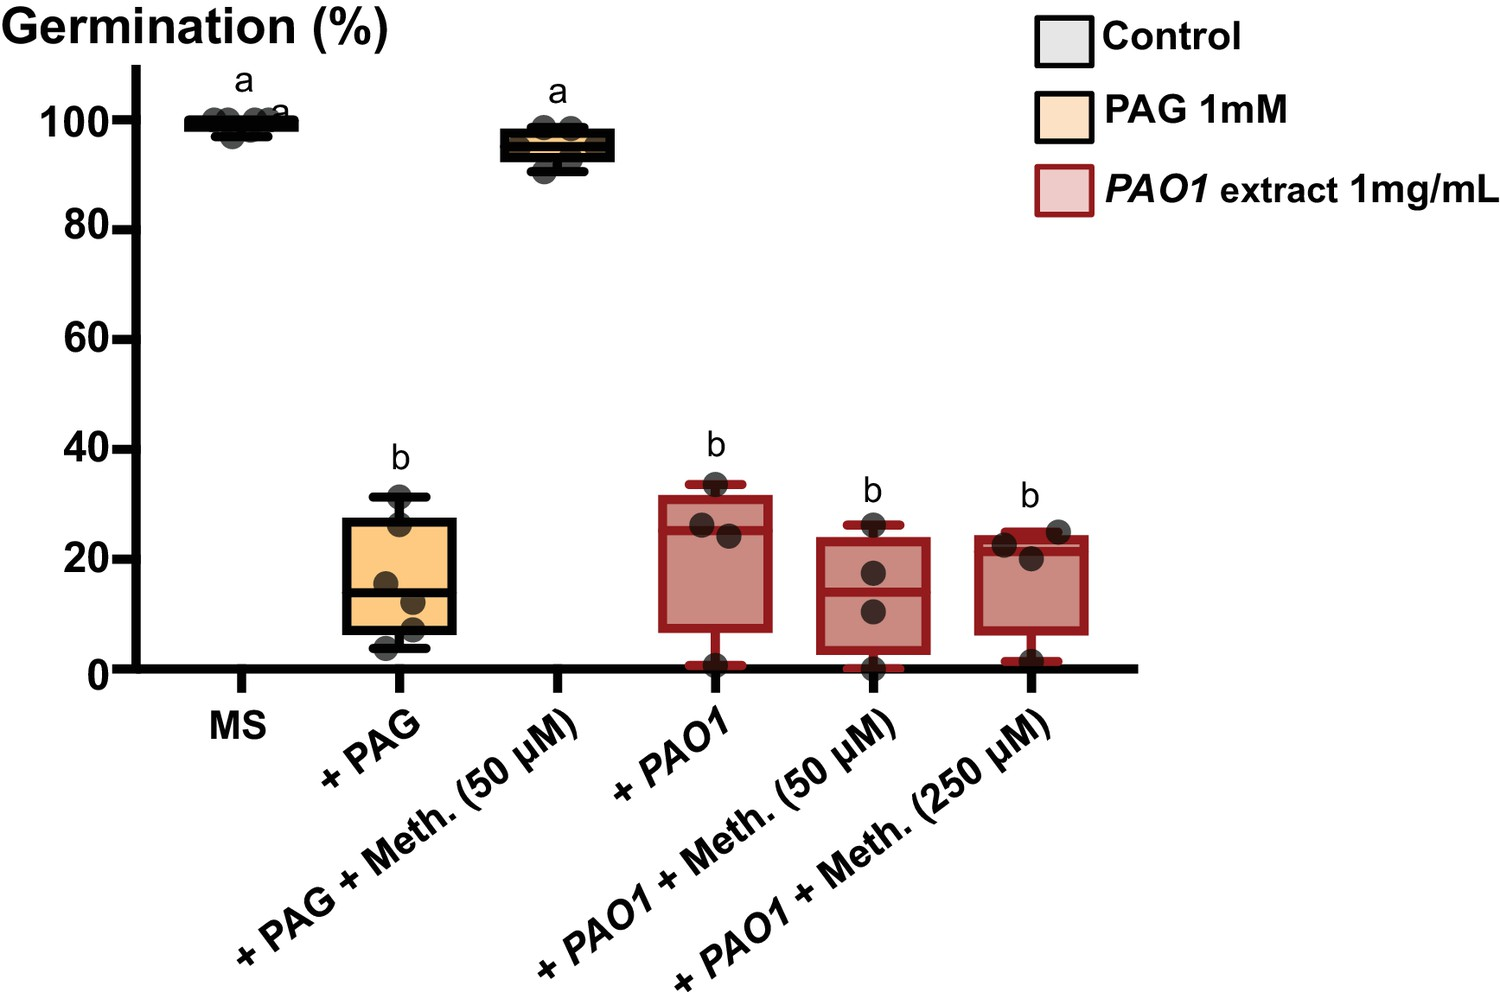 The Plant Pathogen Pseudomonas Aeruginosa Triggers A Della Dependent Sprouting Seed Diagram Germination Images Google Search Might Effect Of Pag Methionine And Pao1 Extracts On